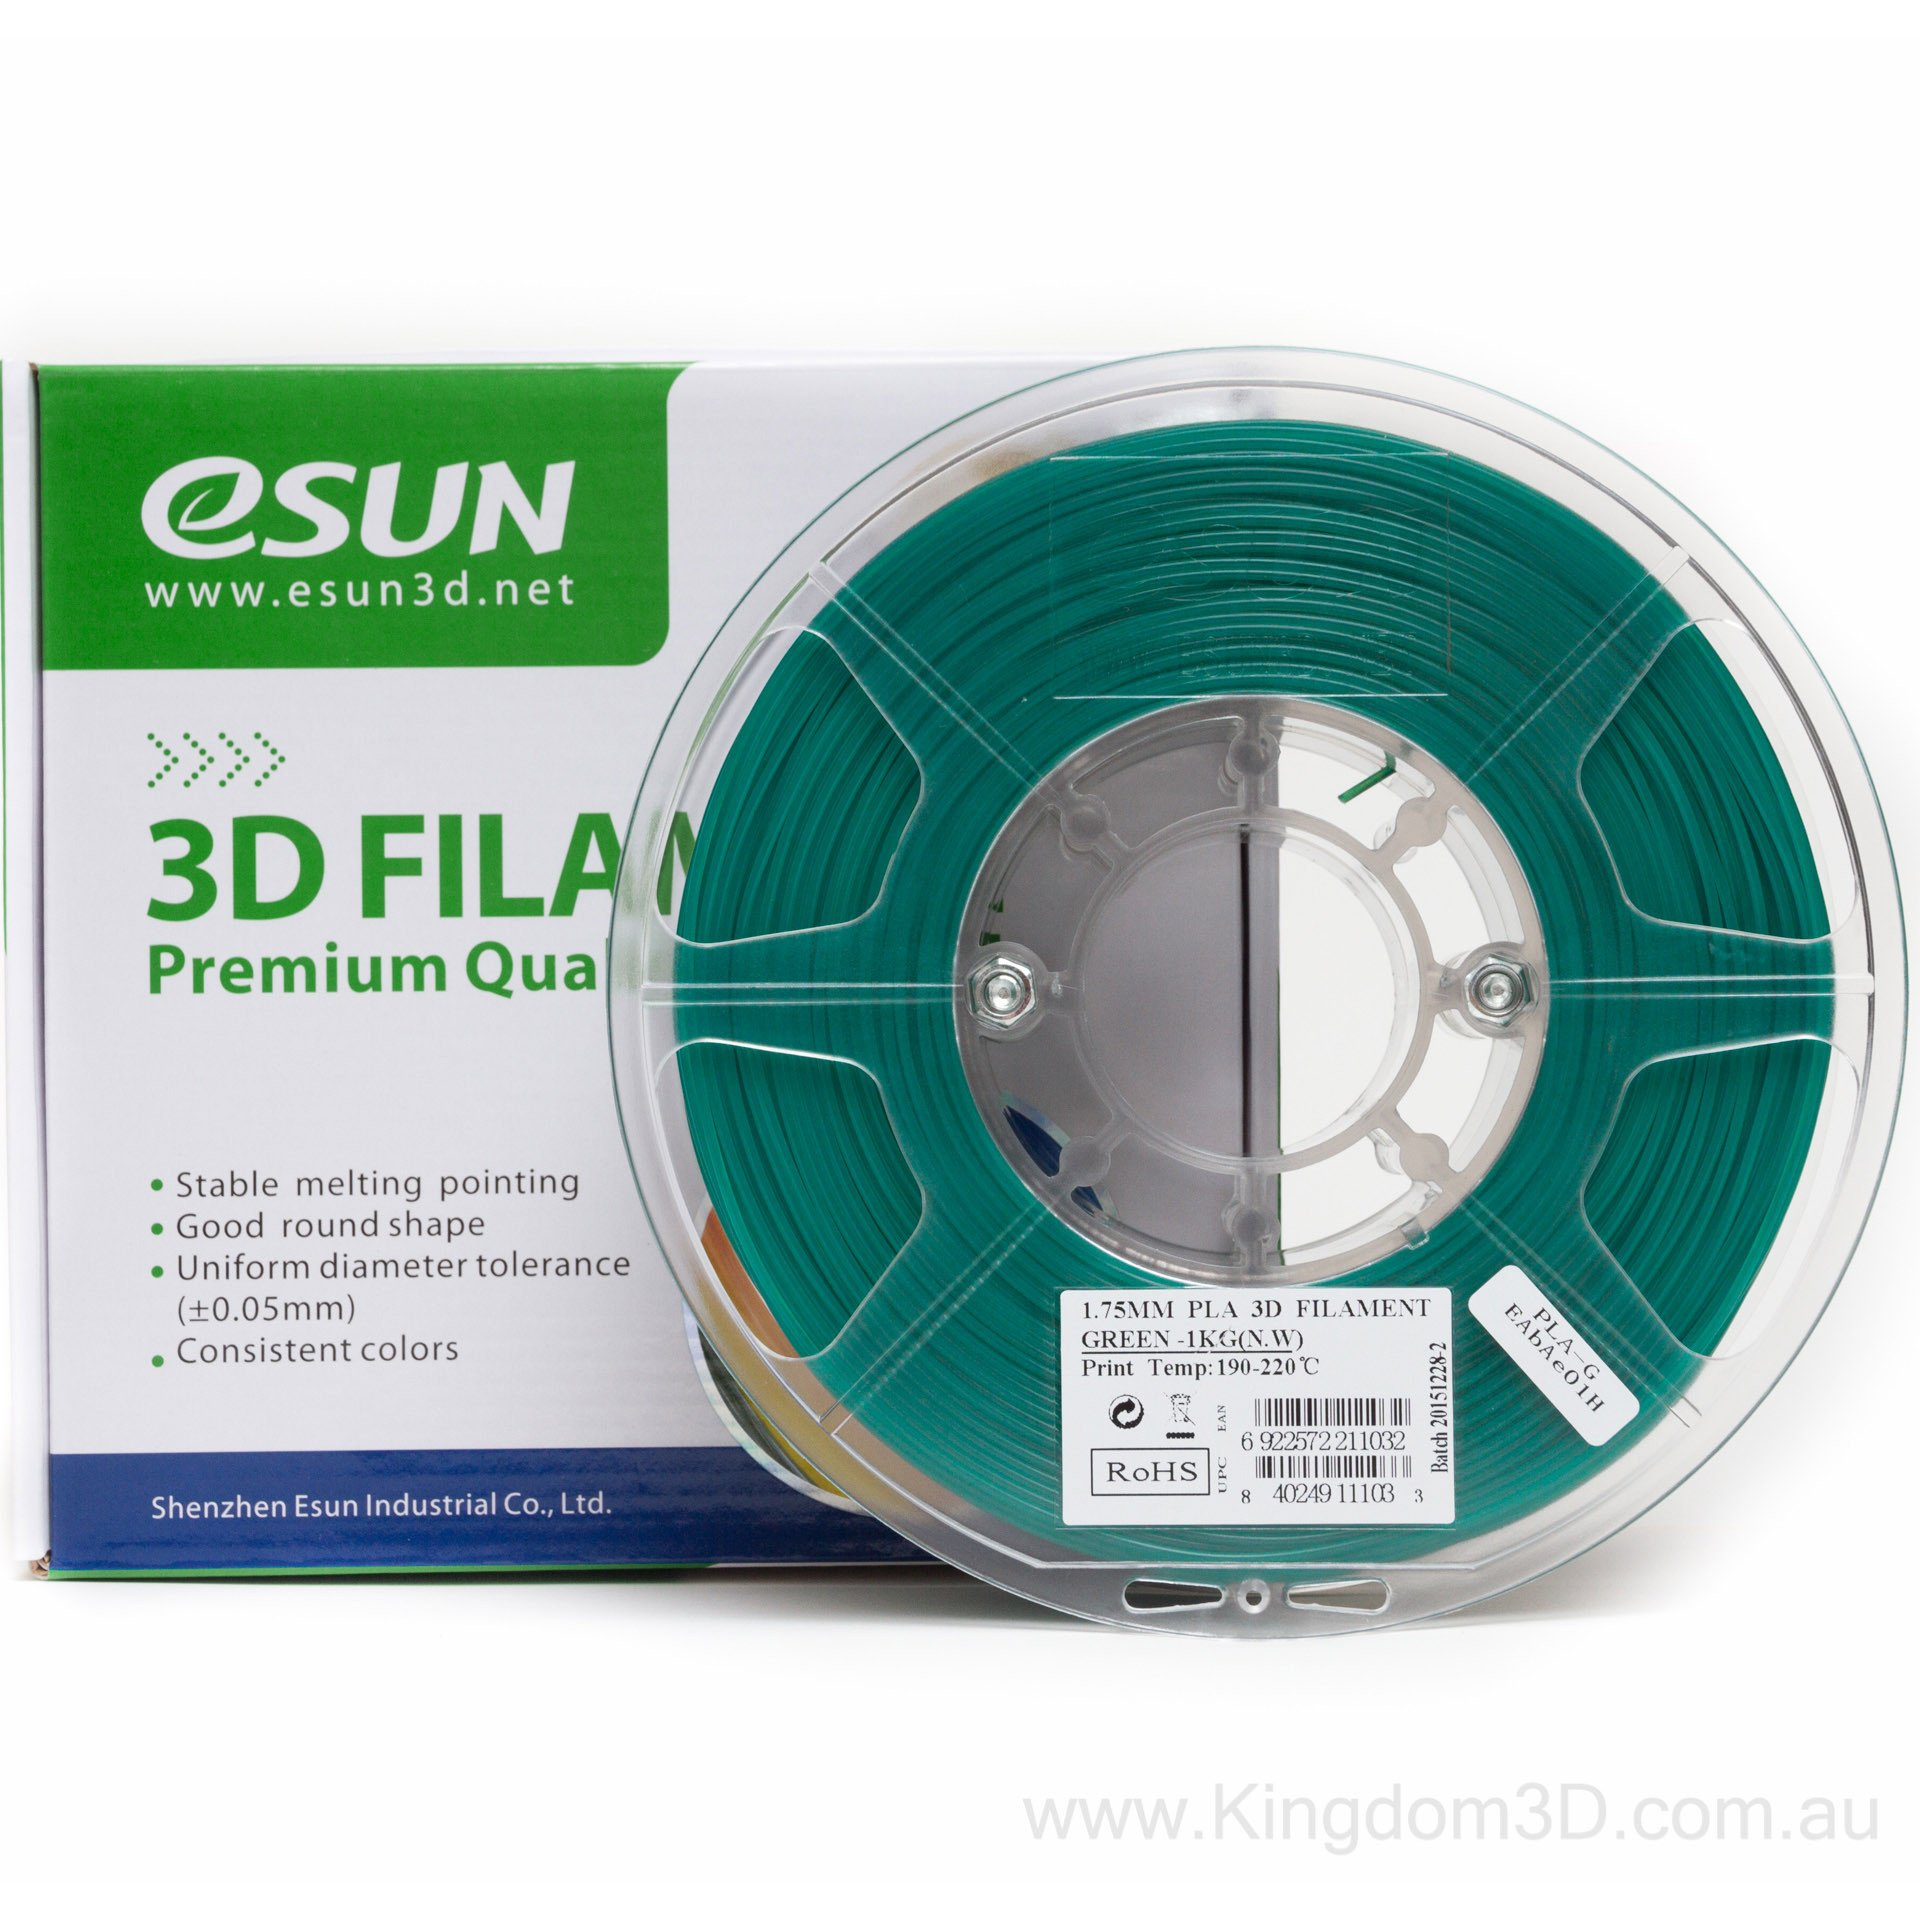 PLA filament, 1.75mm, Green, 1kg/spool